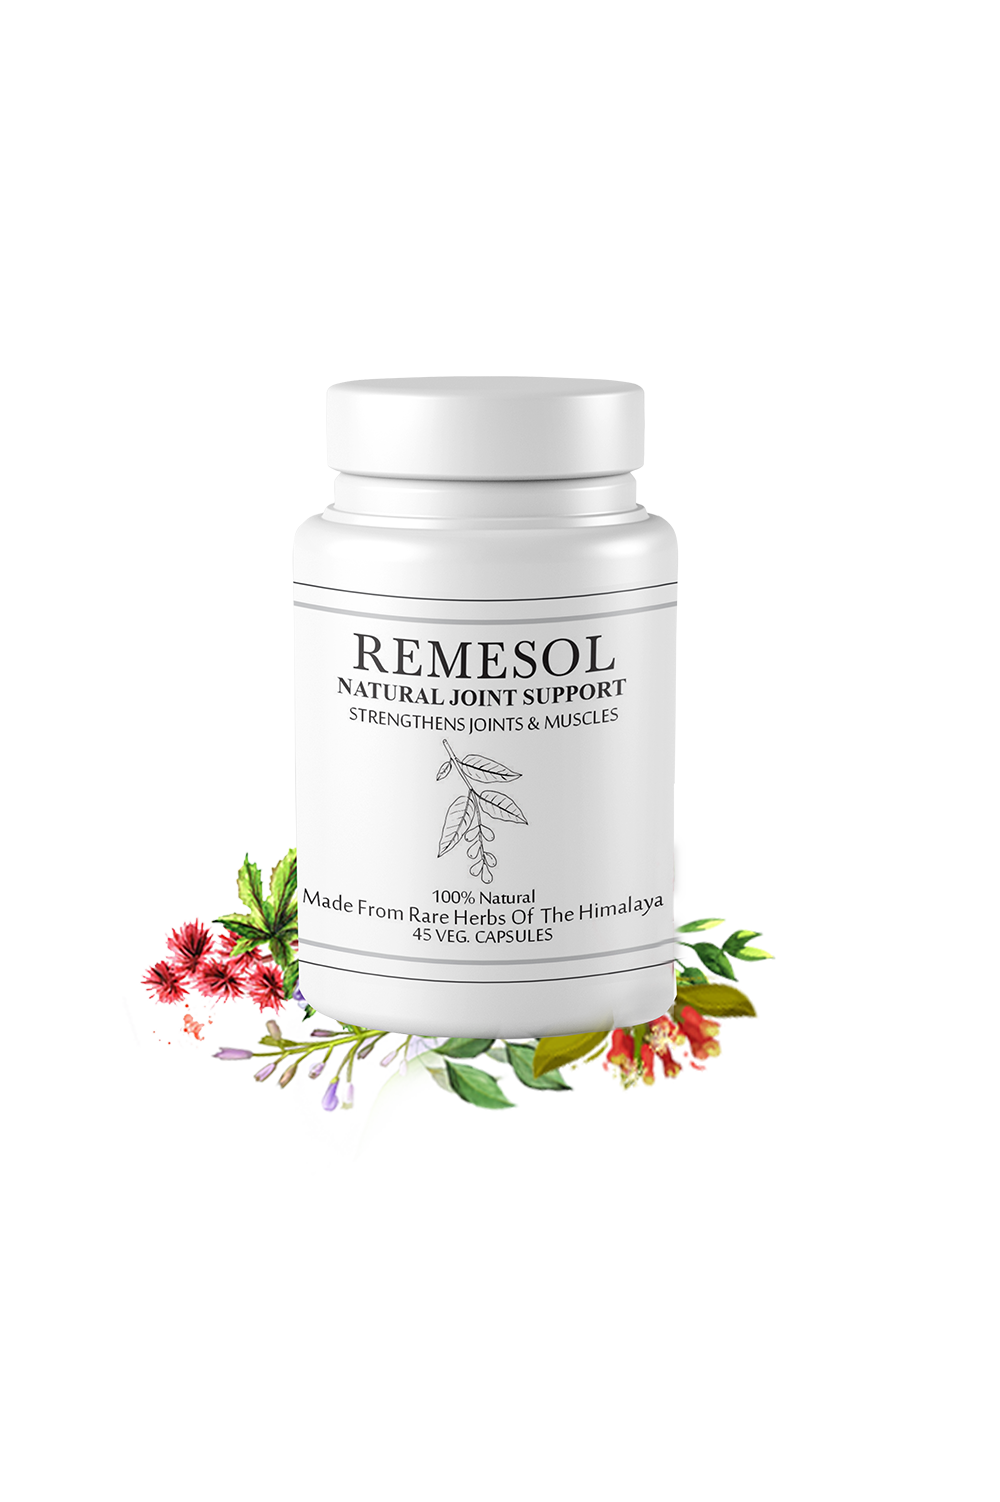 Remesol Natural Joint Support Formula